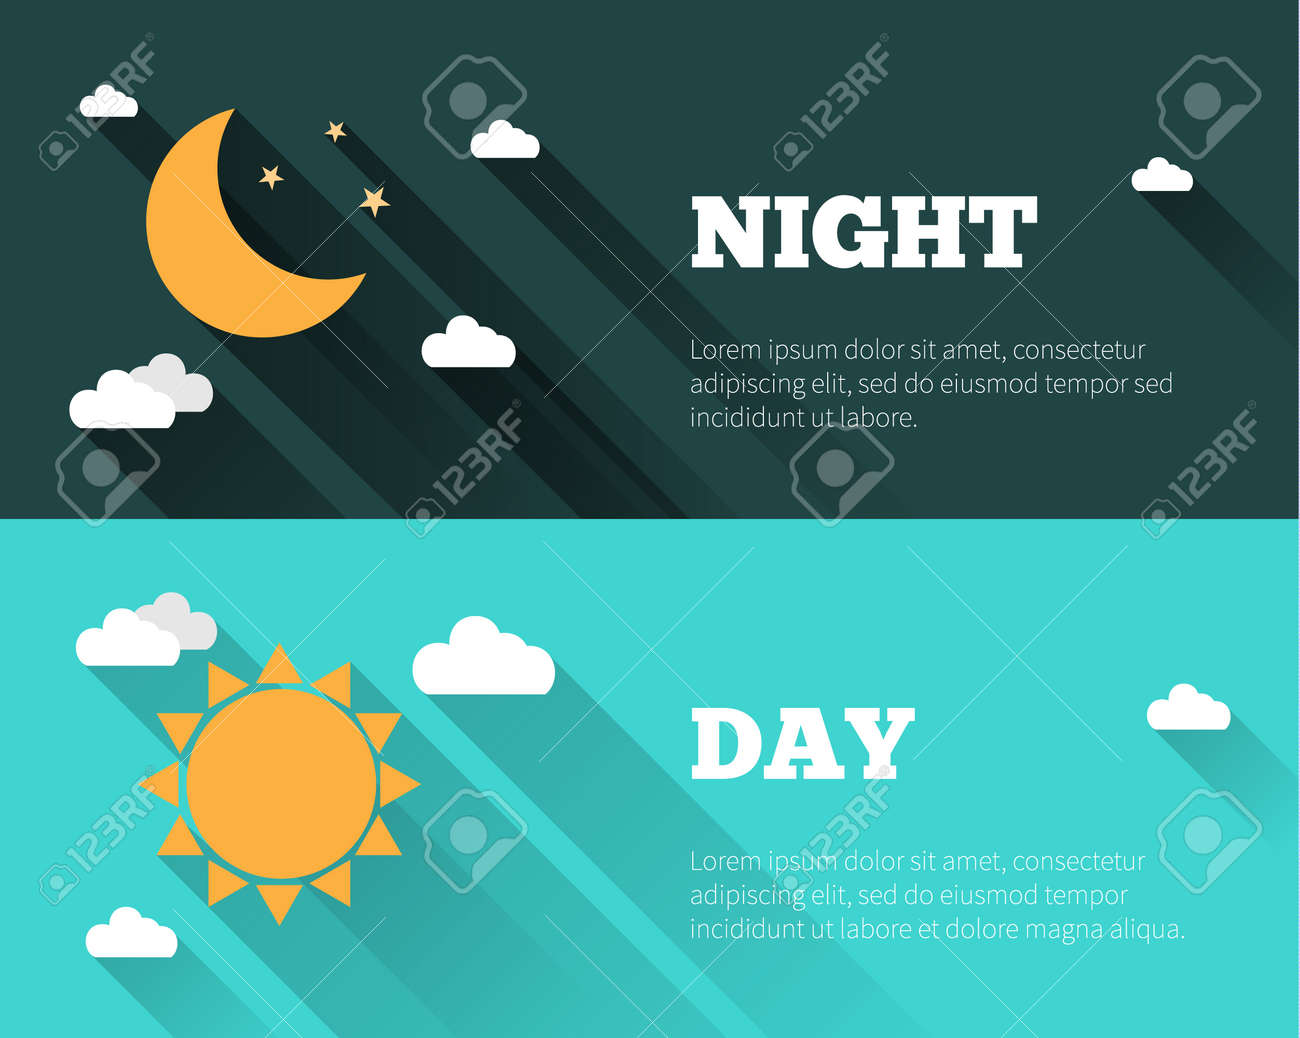 Sun, moon and stars, clouds icons. Day and night sky vector banners. Flat style illustration with long shadows. Day time concept posters. - 45117518